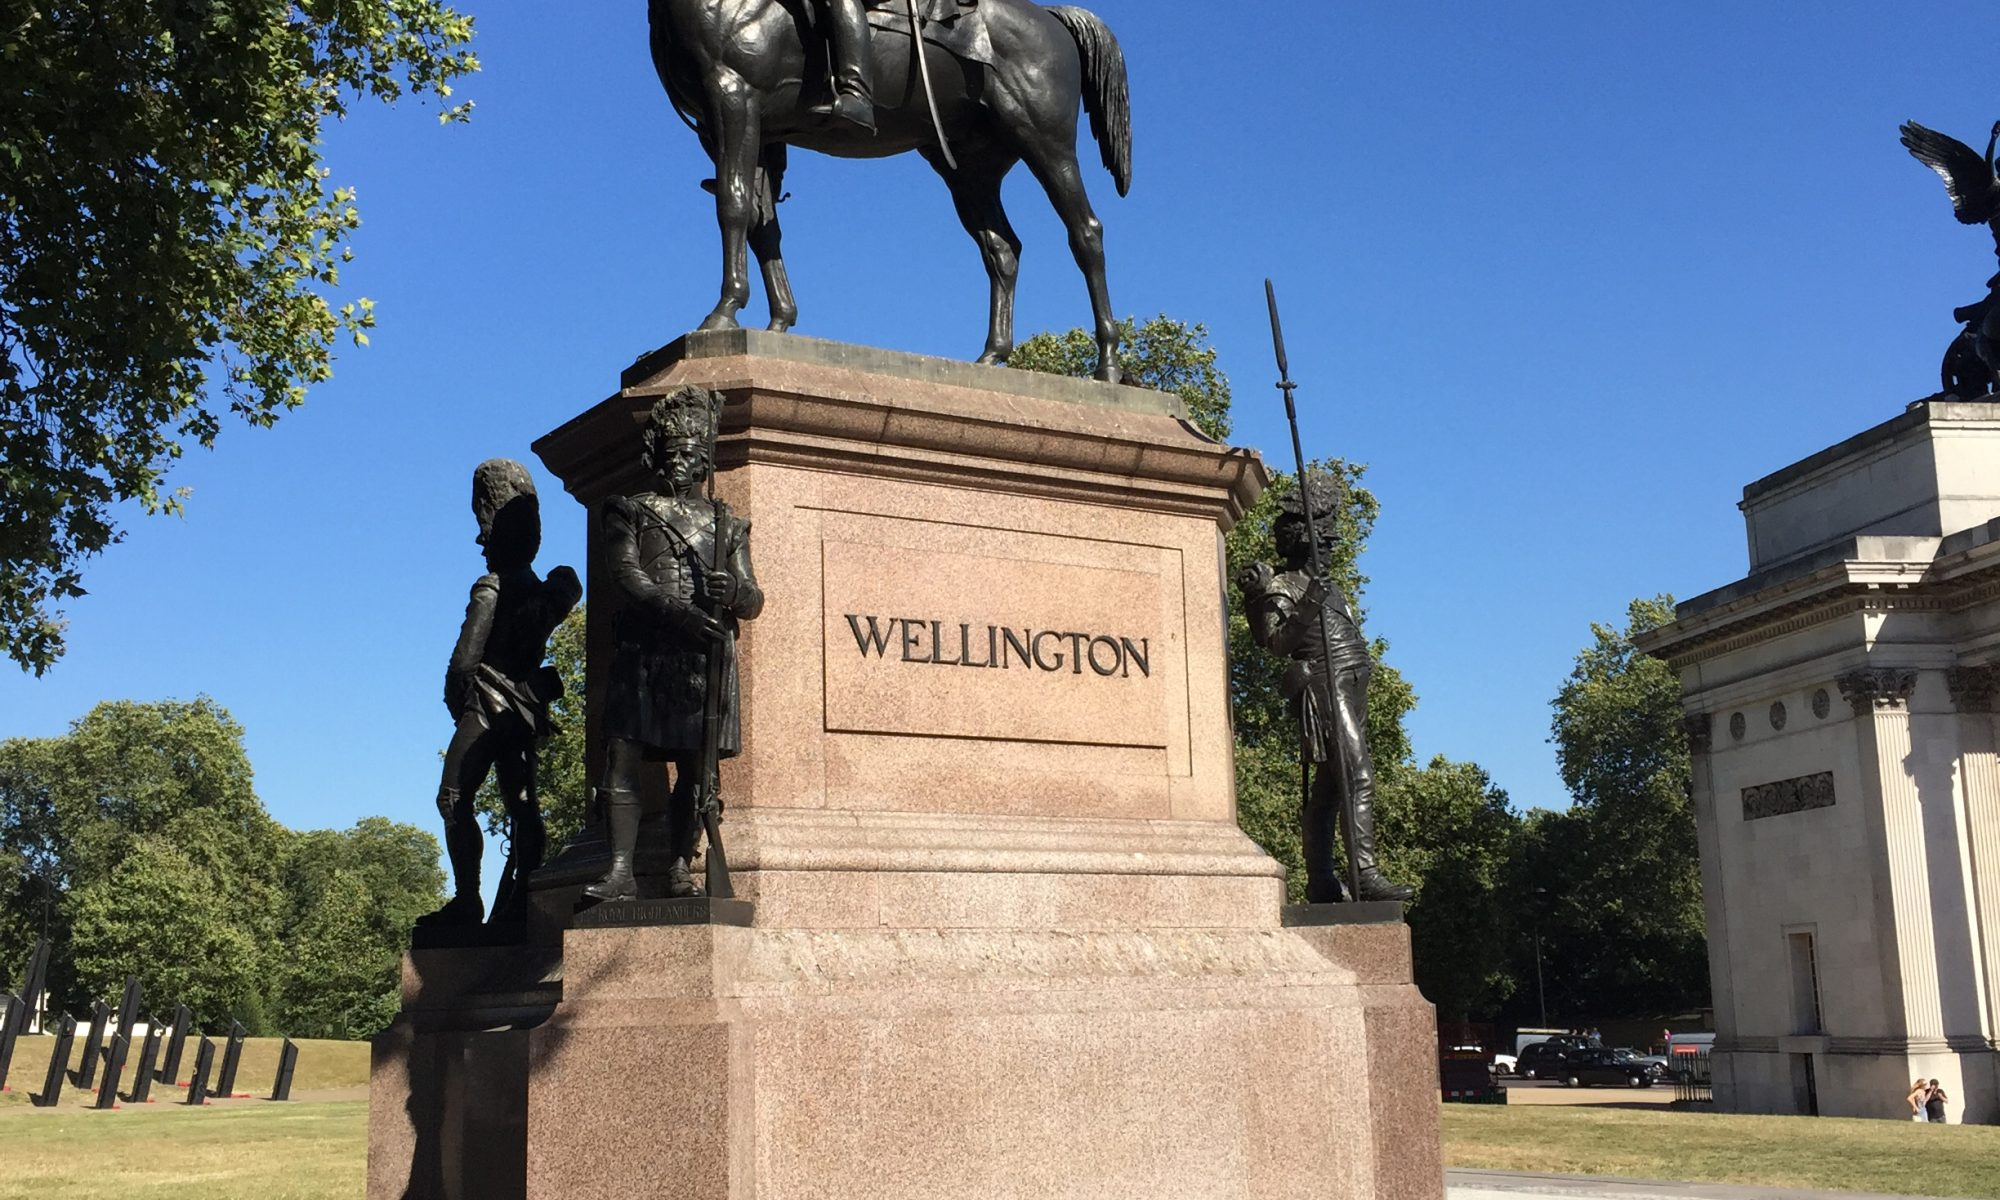 Wellington Statue, London